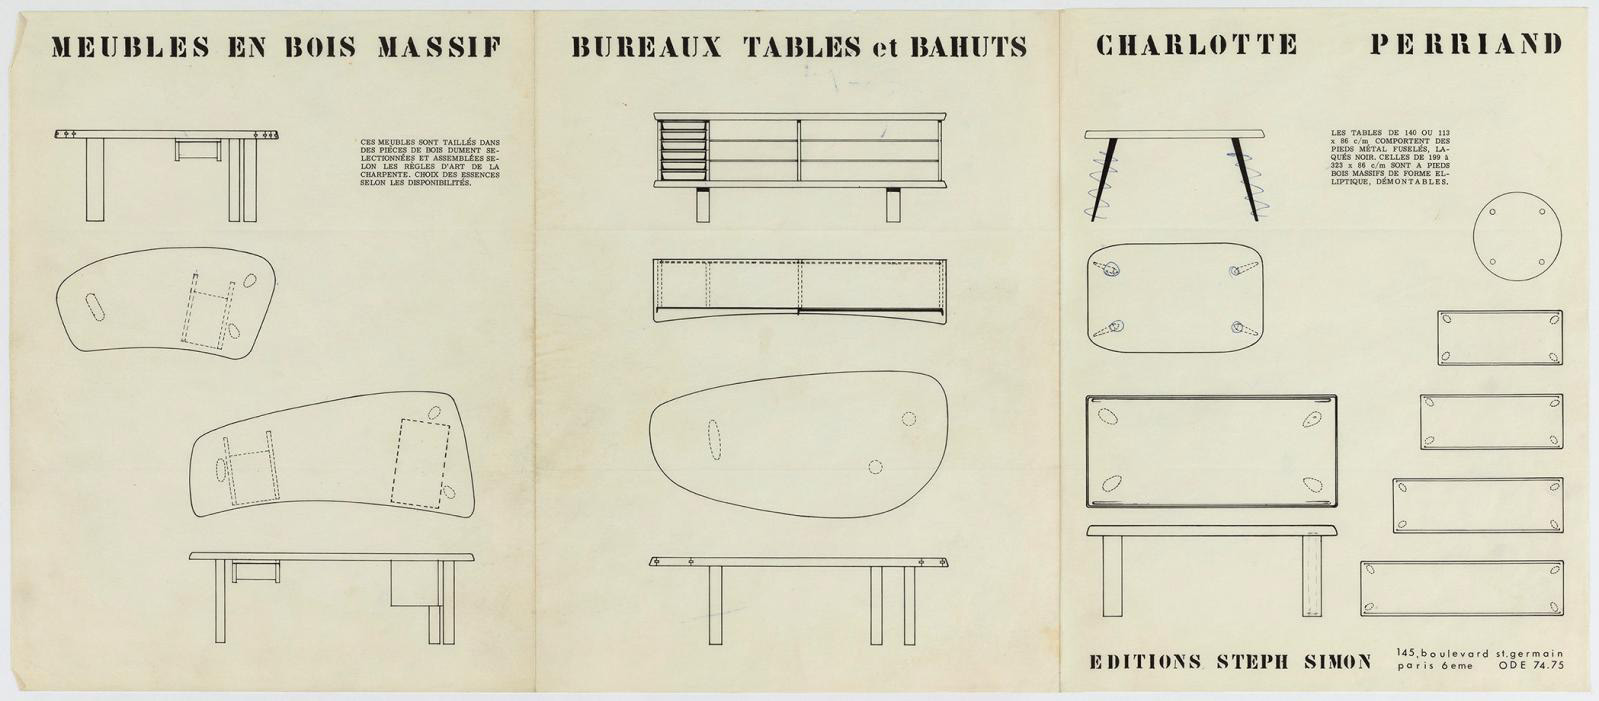 Charlotte Perriand furniture brochure published by Steph Simon, c. 1965.